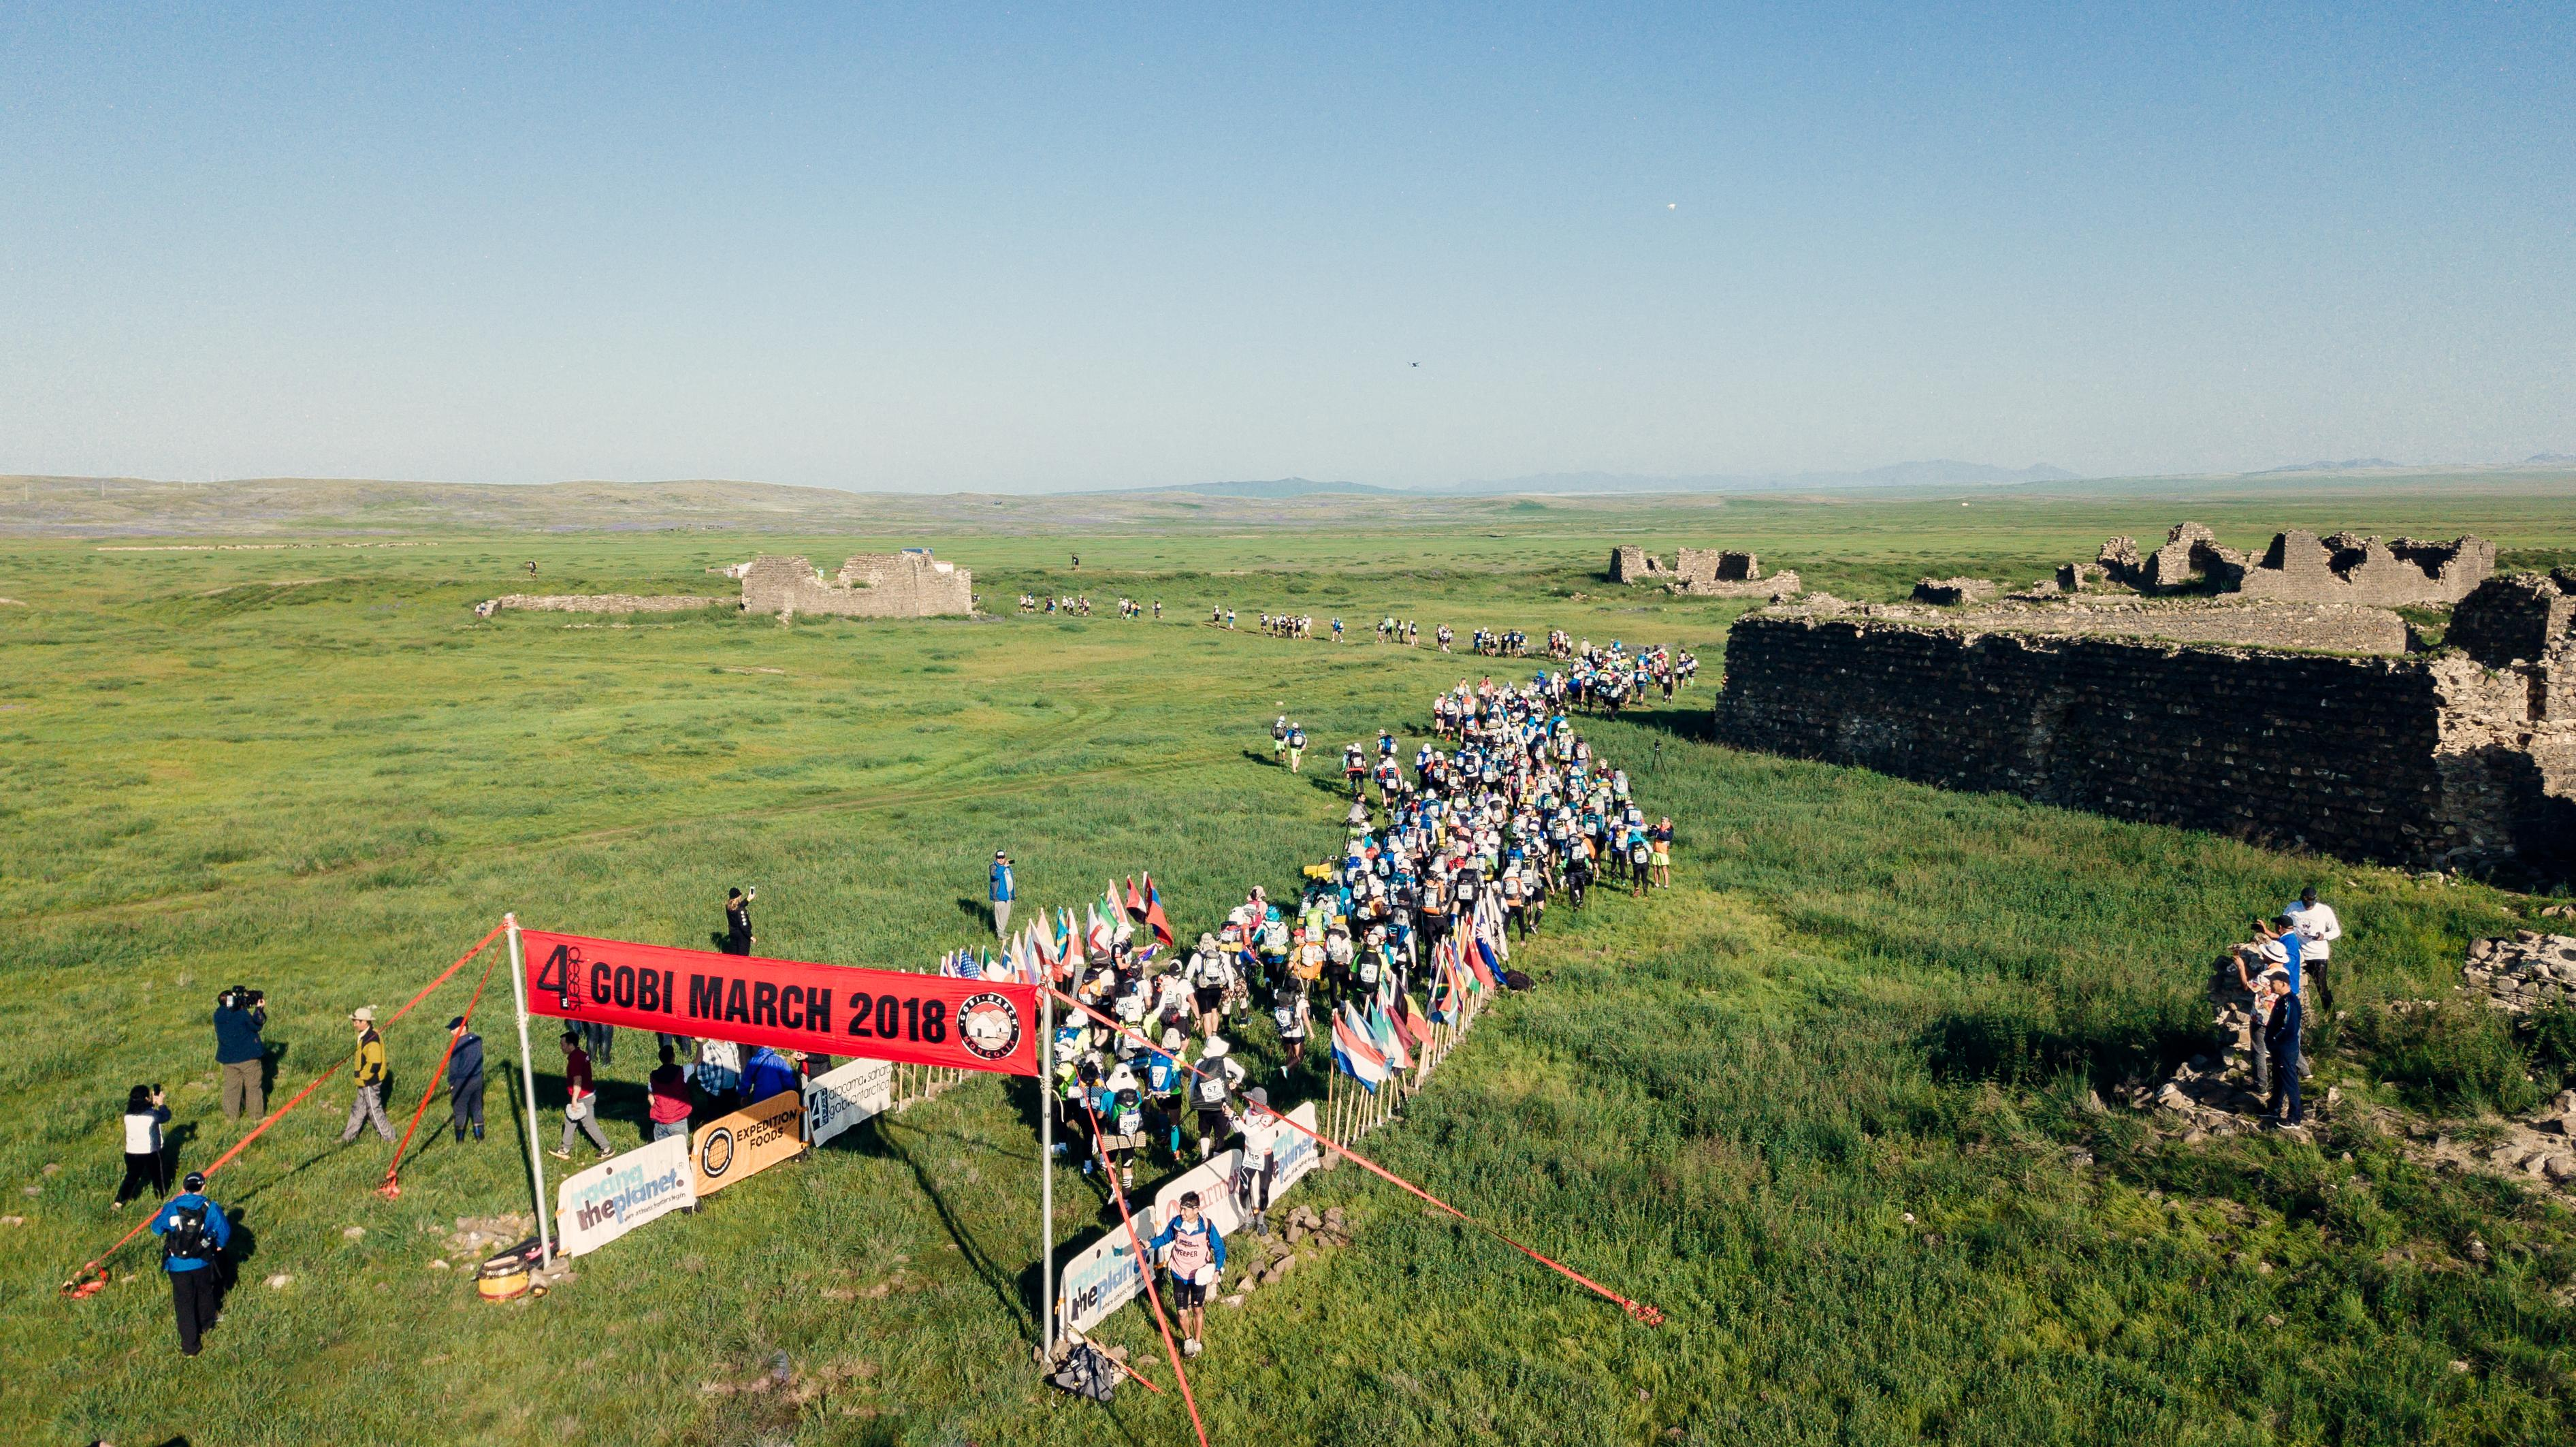 Conquering the Battleground of Genghis Khan - 1 Steppe at a Time!